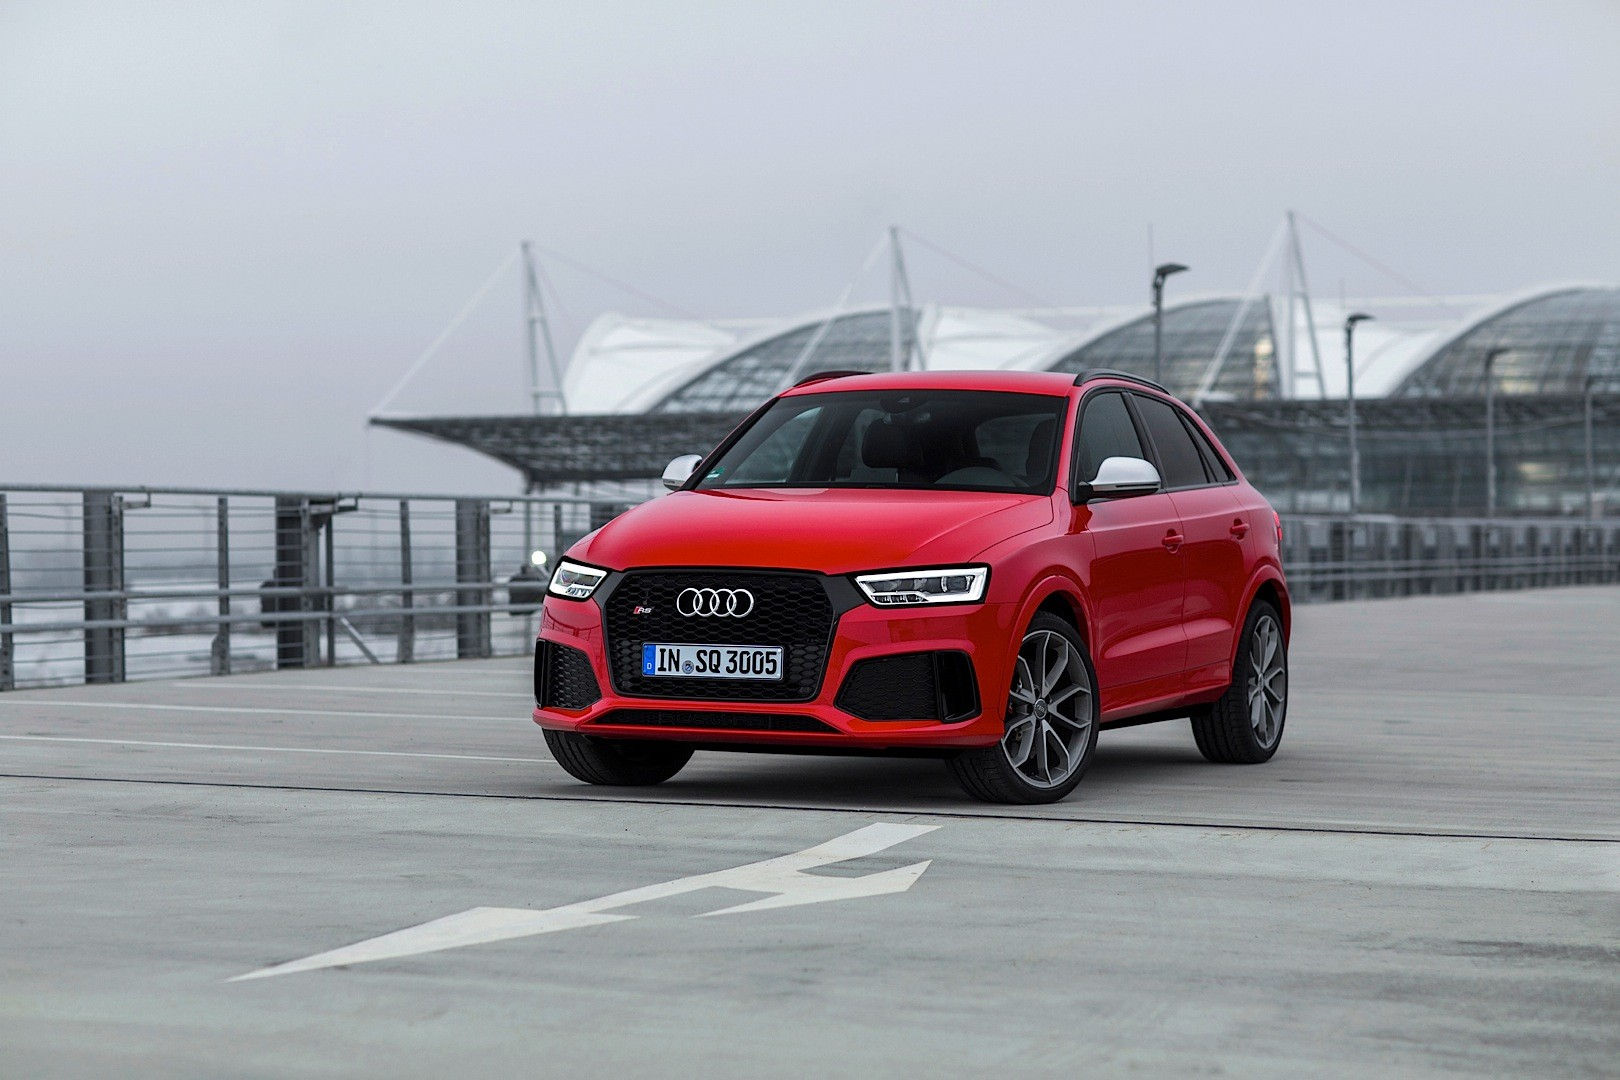 2015 audi rs q3 acceleration test 0 to 100 km h in 4 8. Black Bedroom Furniture Sets. Home Design Ideas